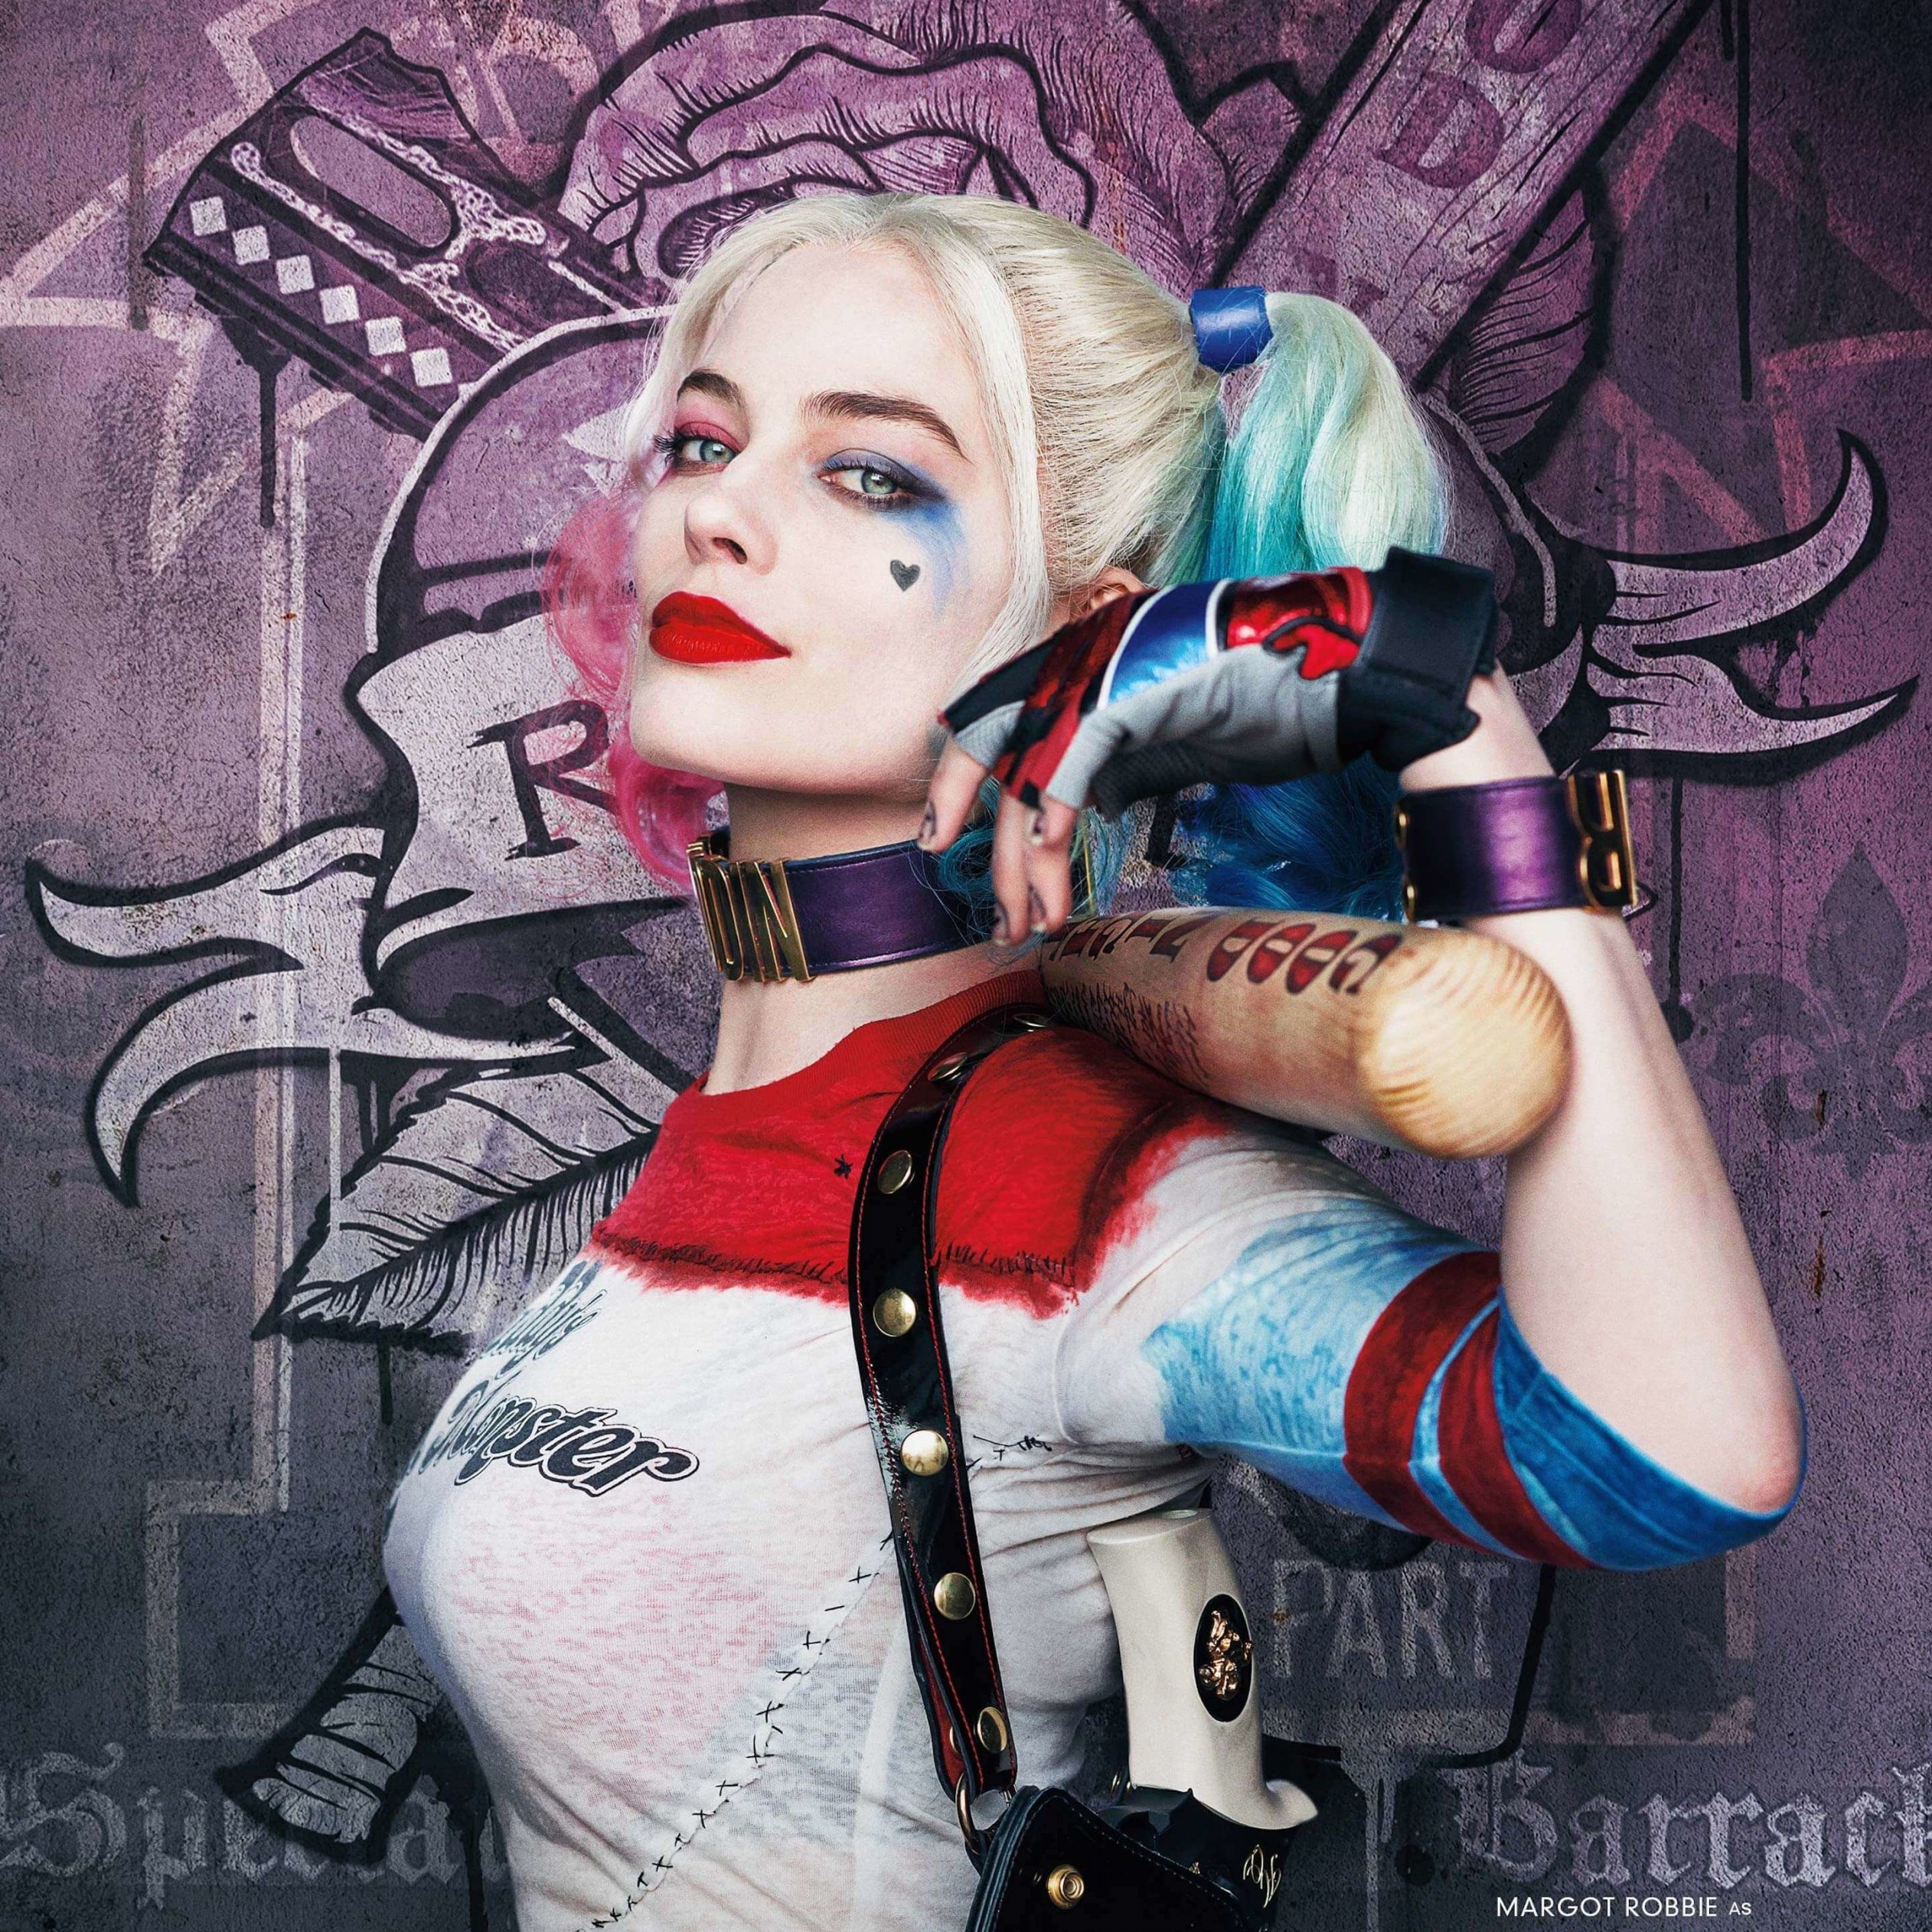 Harley Quinn - Suicide Squad Wallpaper for Apple iPad mini 2